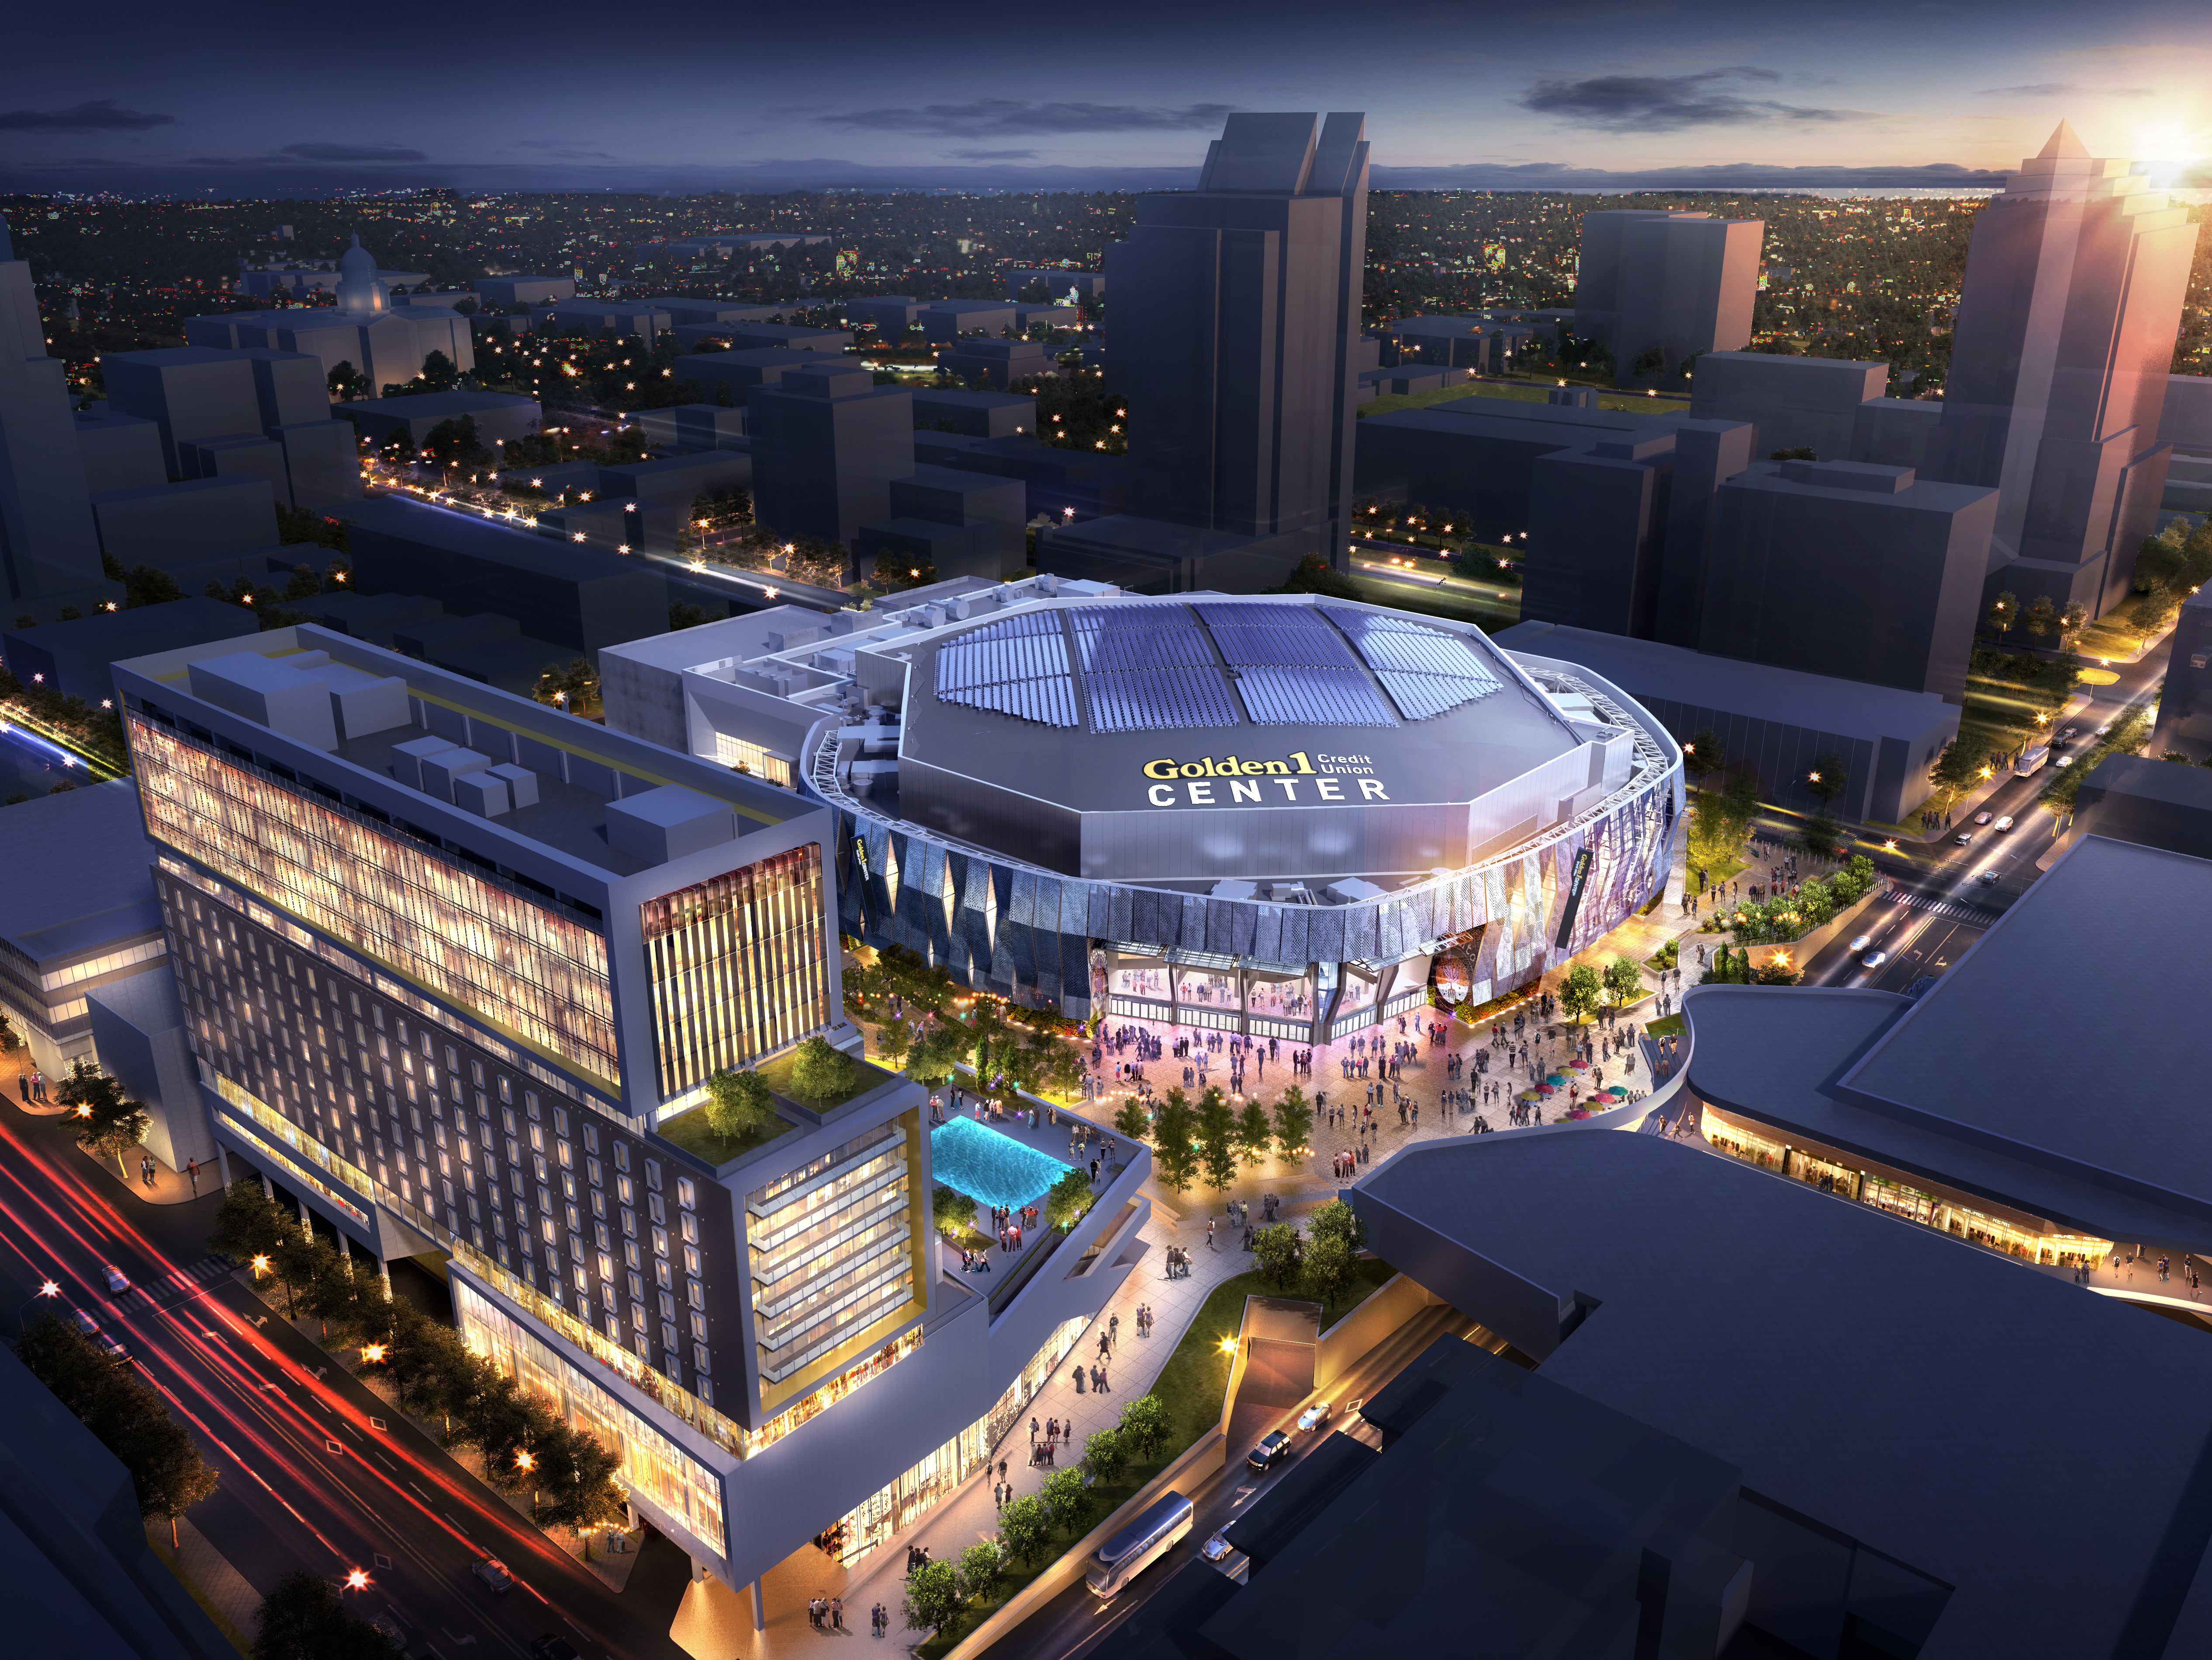 Overhead_North commscope makes fiber optic history at golden 1 center business wire